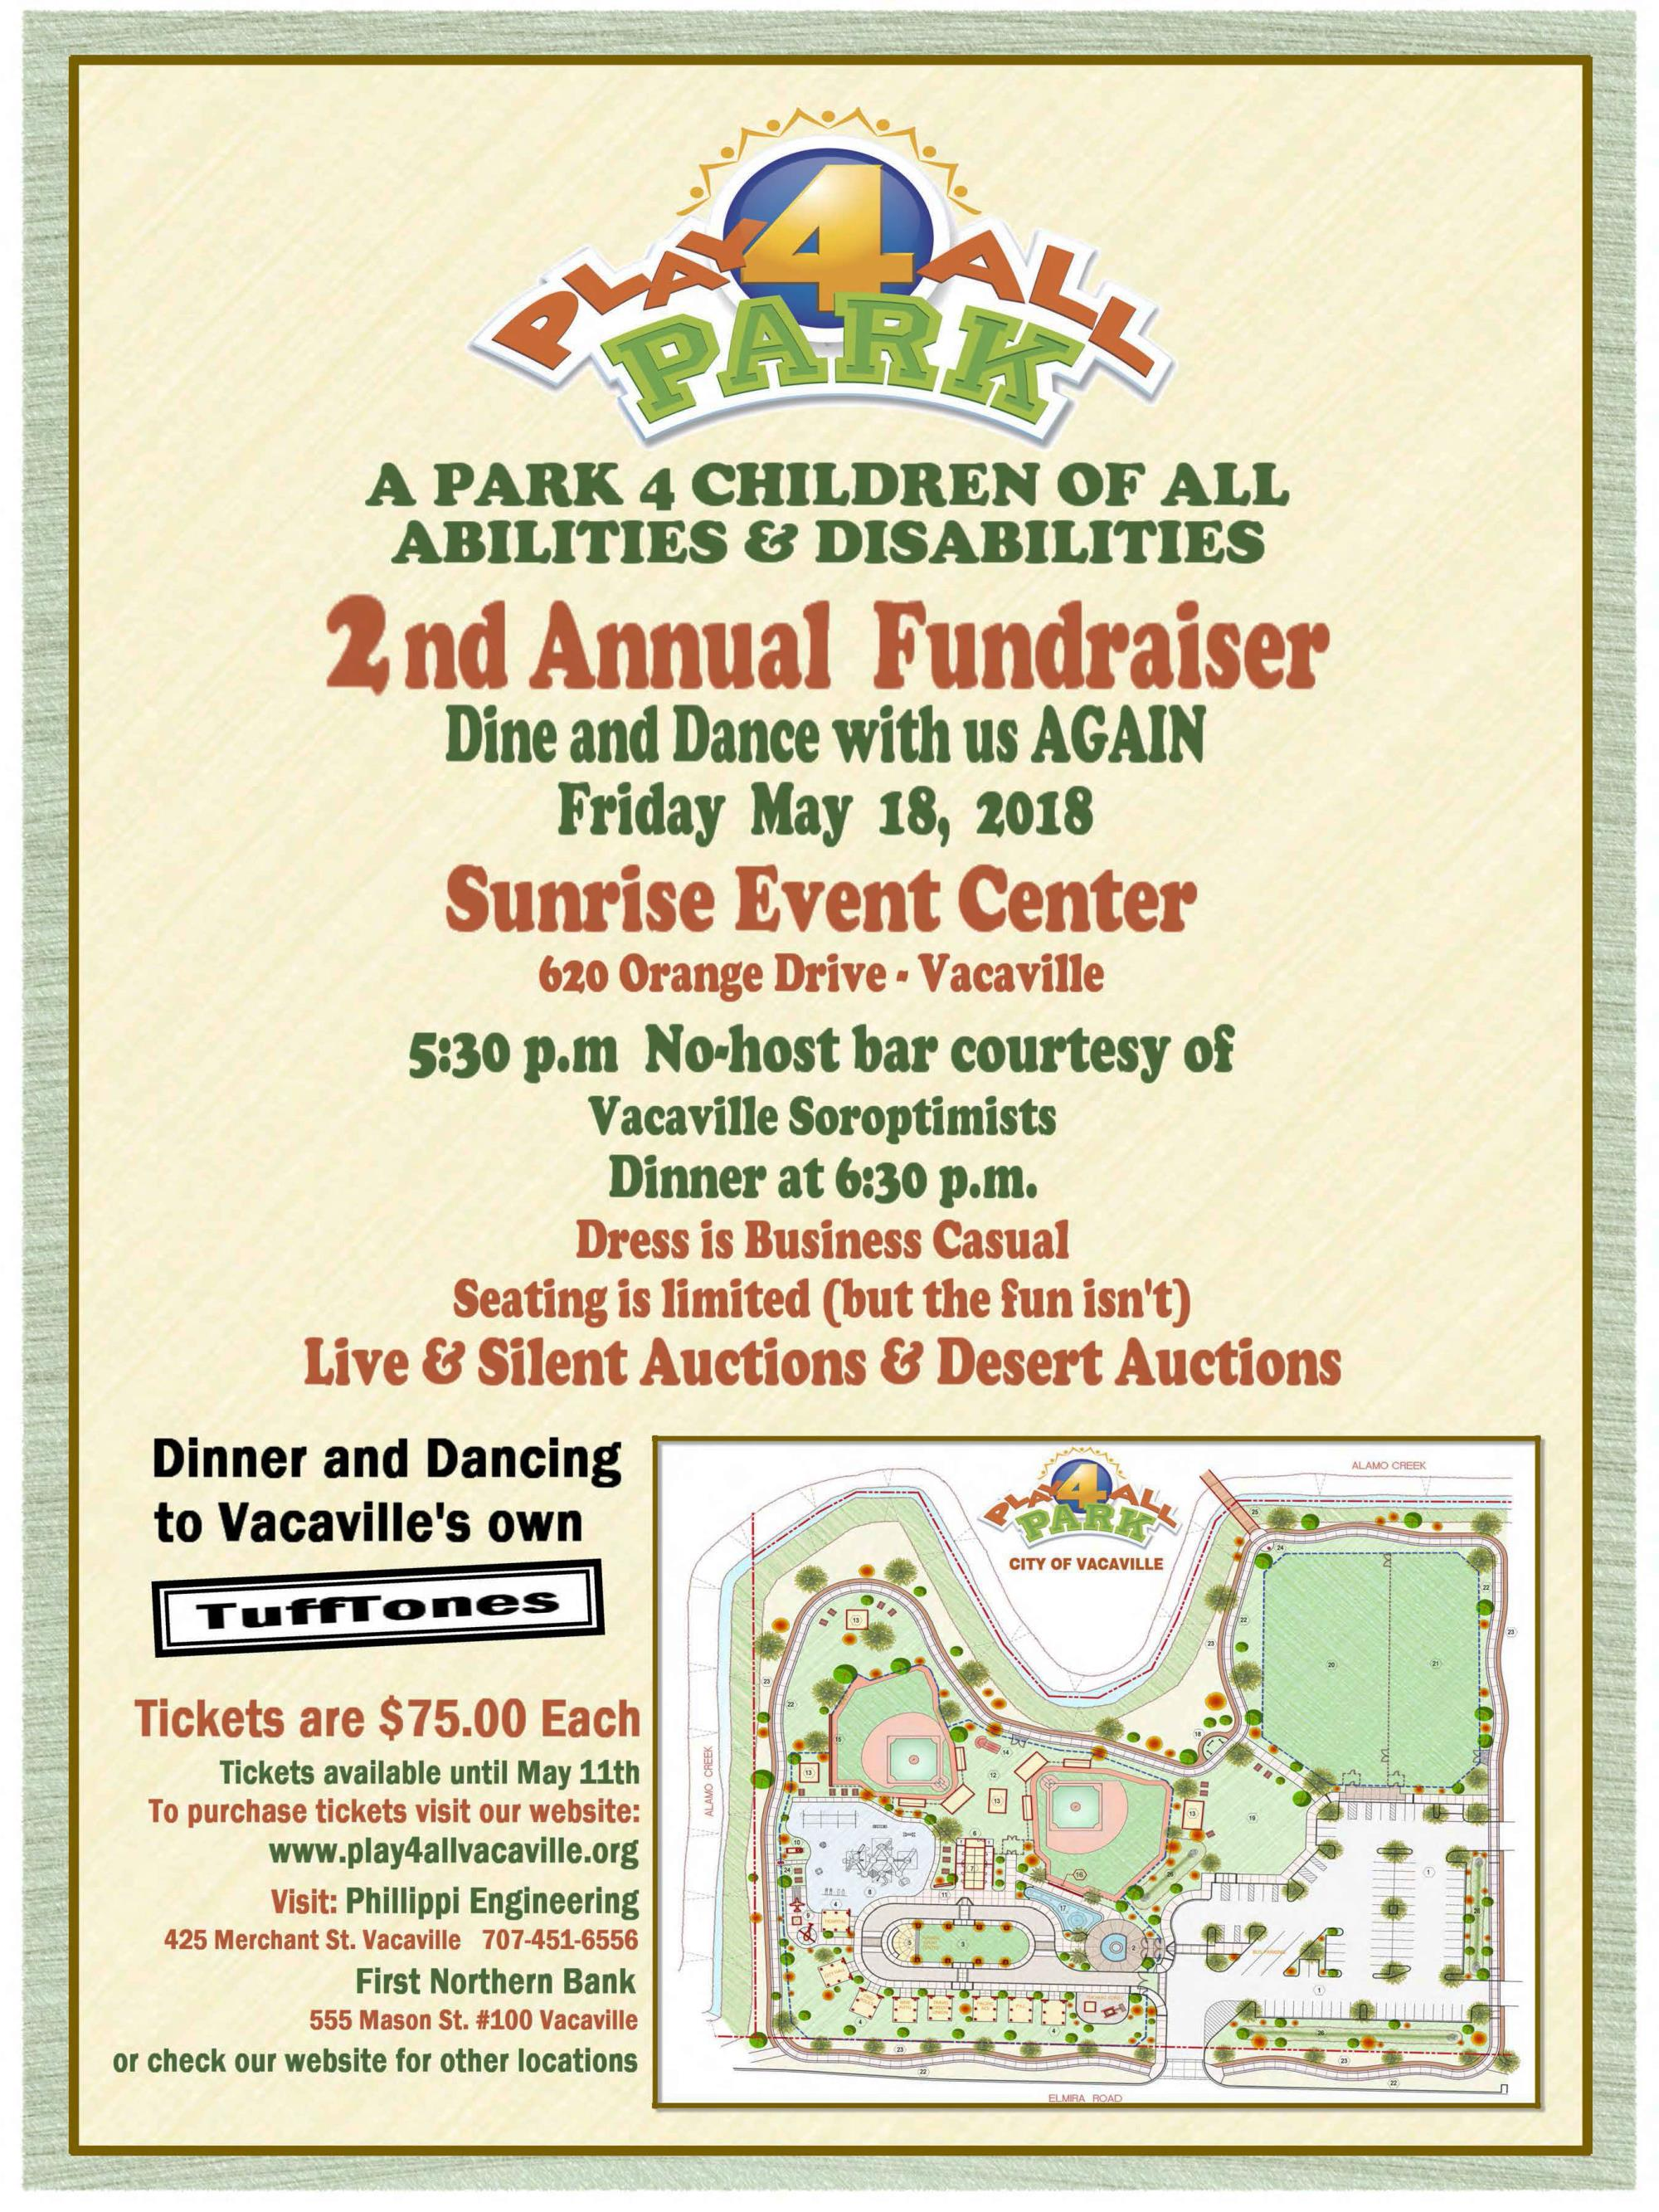 May 18 Fundraiser Flyer for the Play for All Park